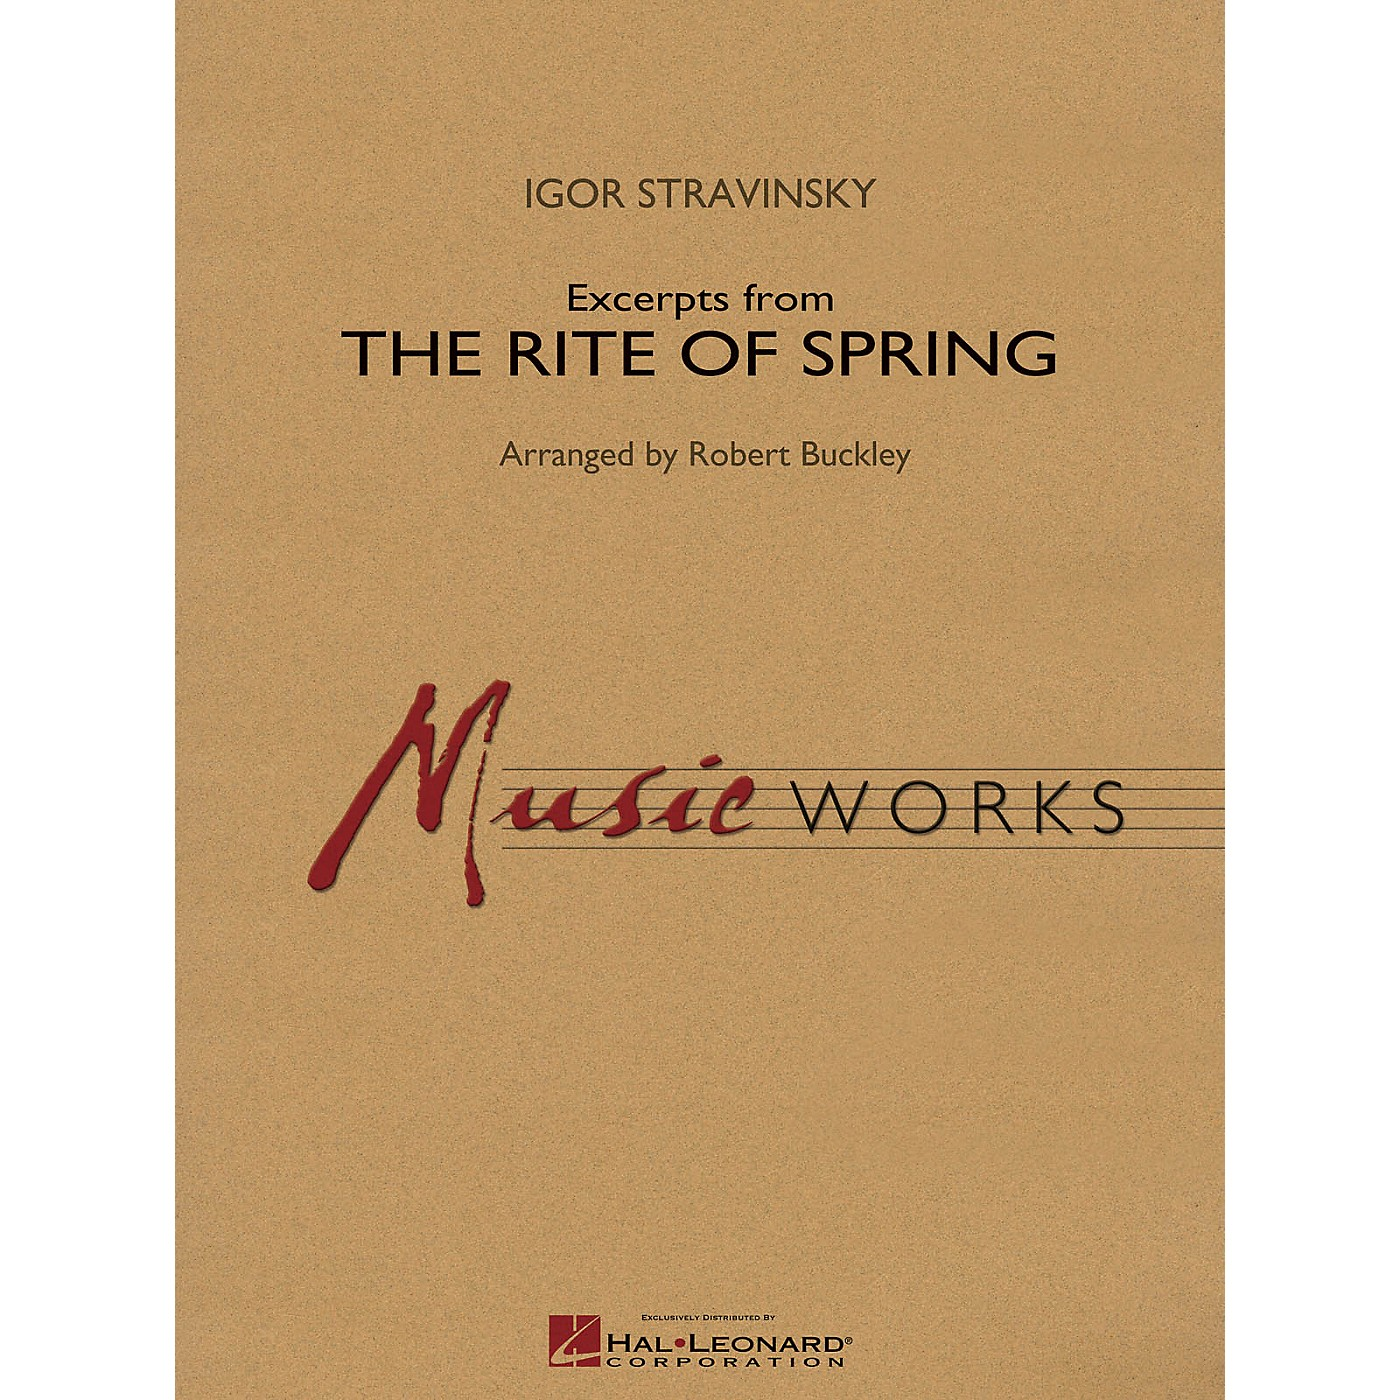 Hal Leonard Excerpts from The Rite of Spring Concert Band Level 4 Arranged by Robert Buckley thumbnail